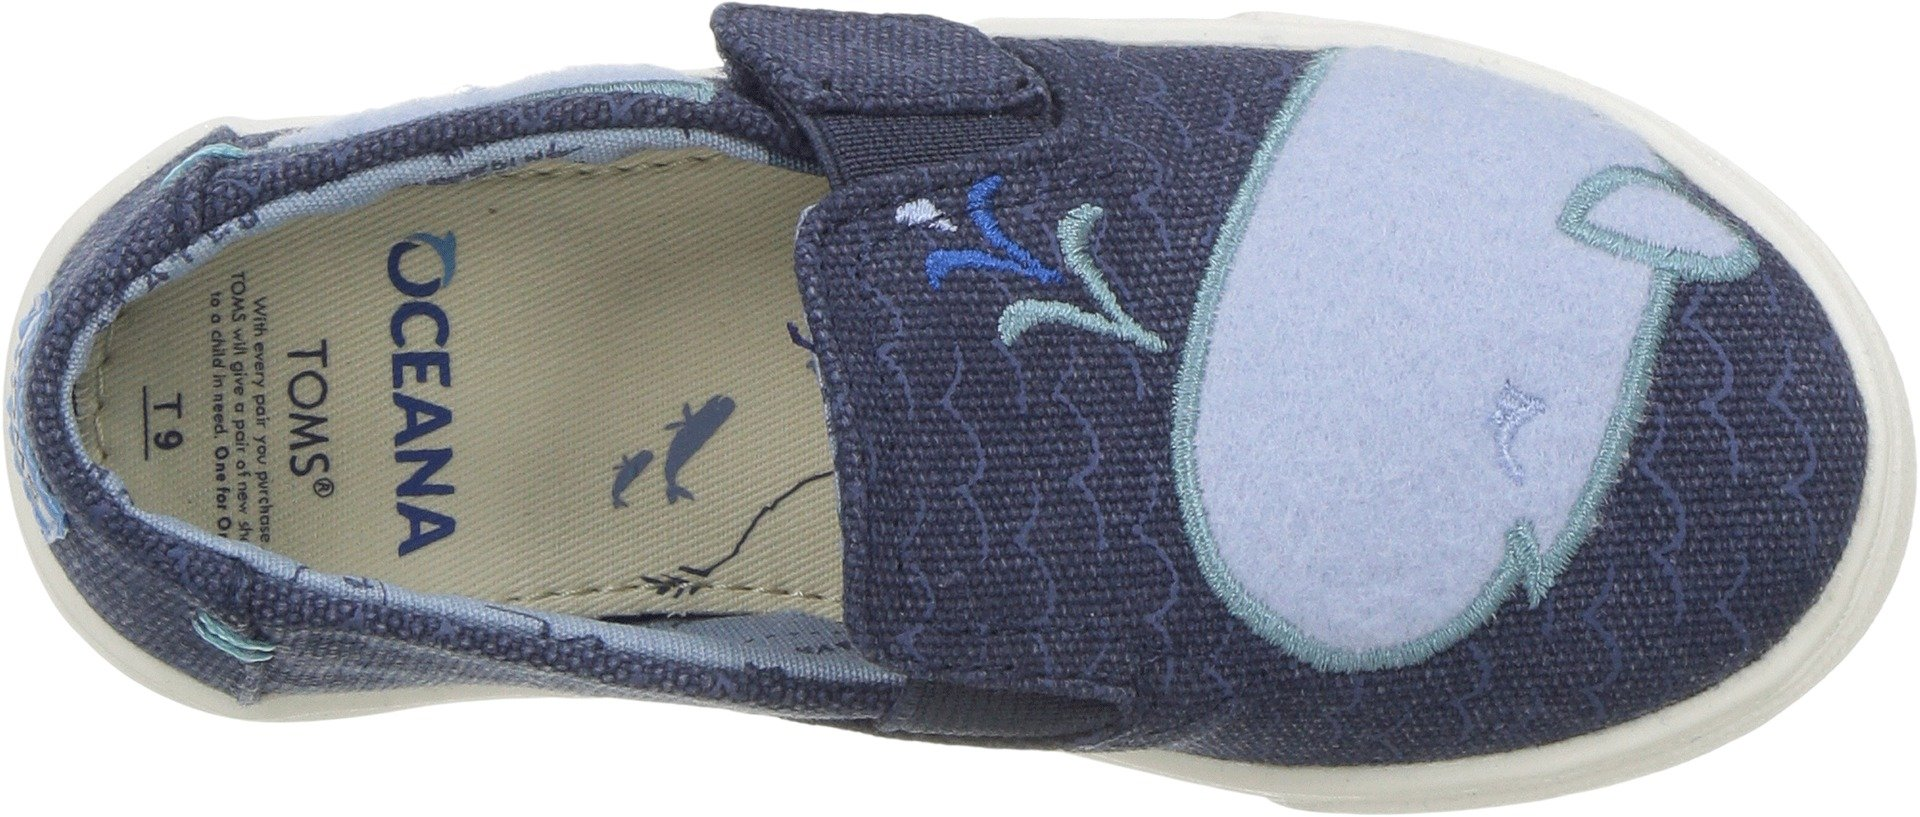 TOMS Kids Unisex Luca (Infant/Toddler/Little Kid) Blue Whale Patch 6 M US Toddler by TOMS (Image #2)